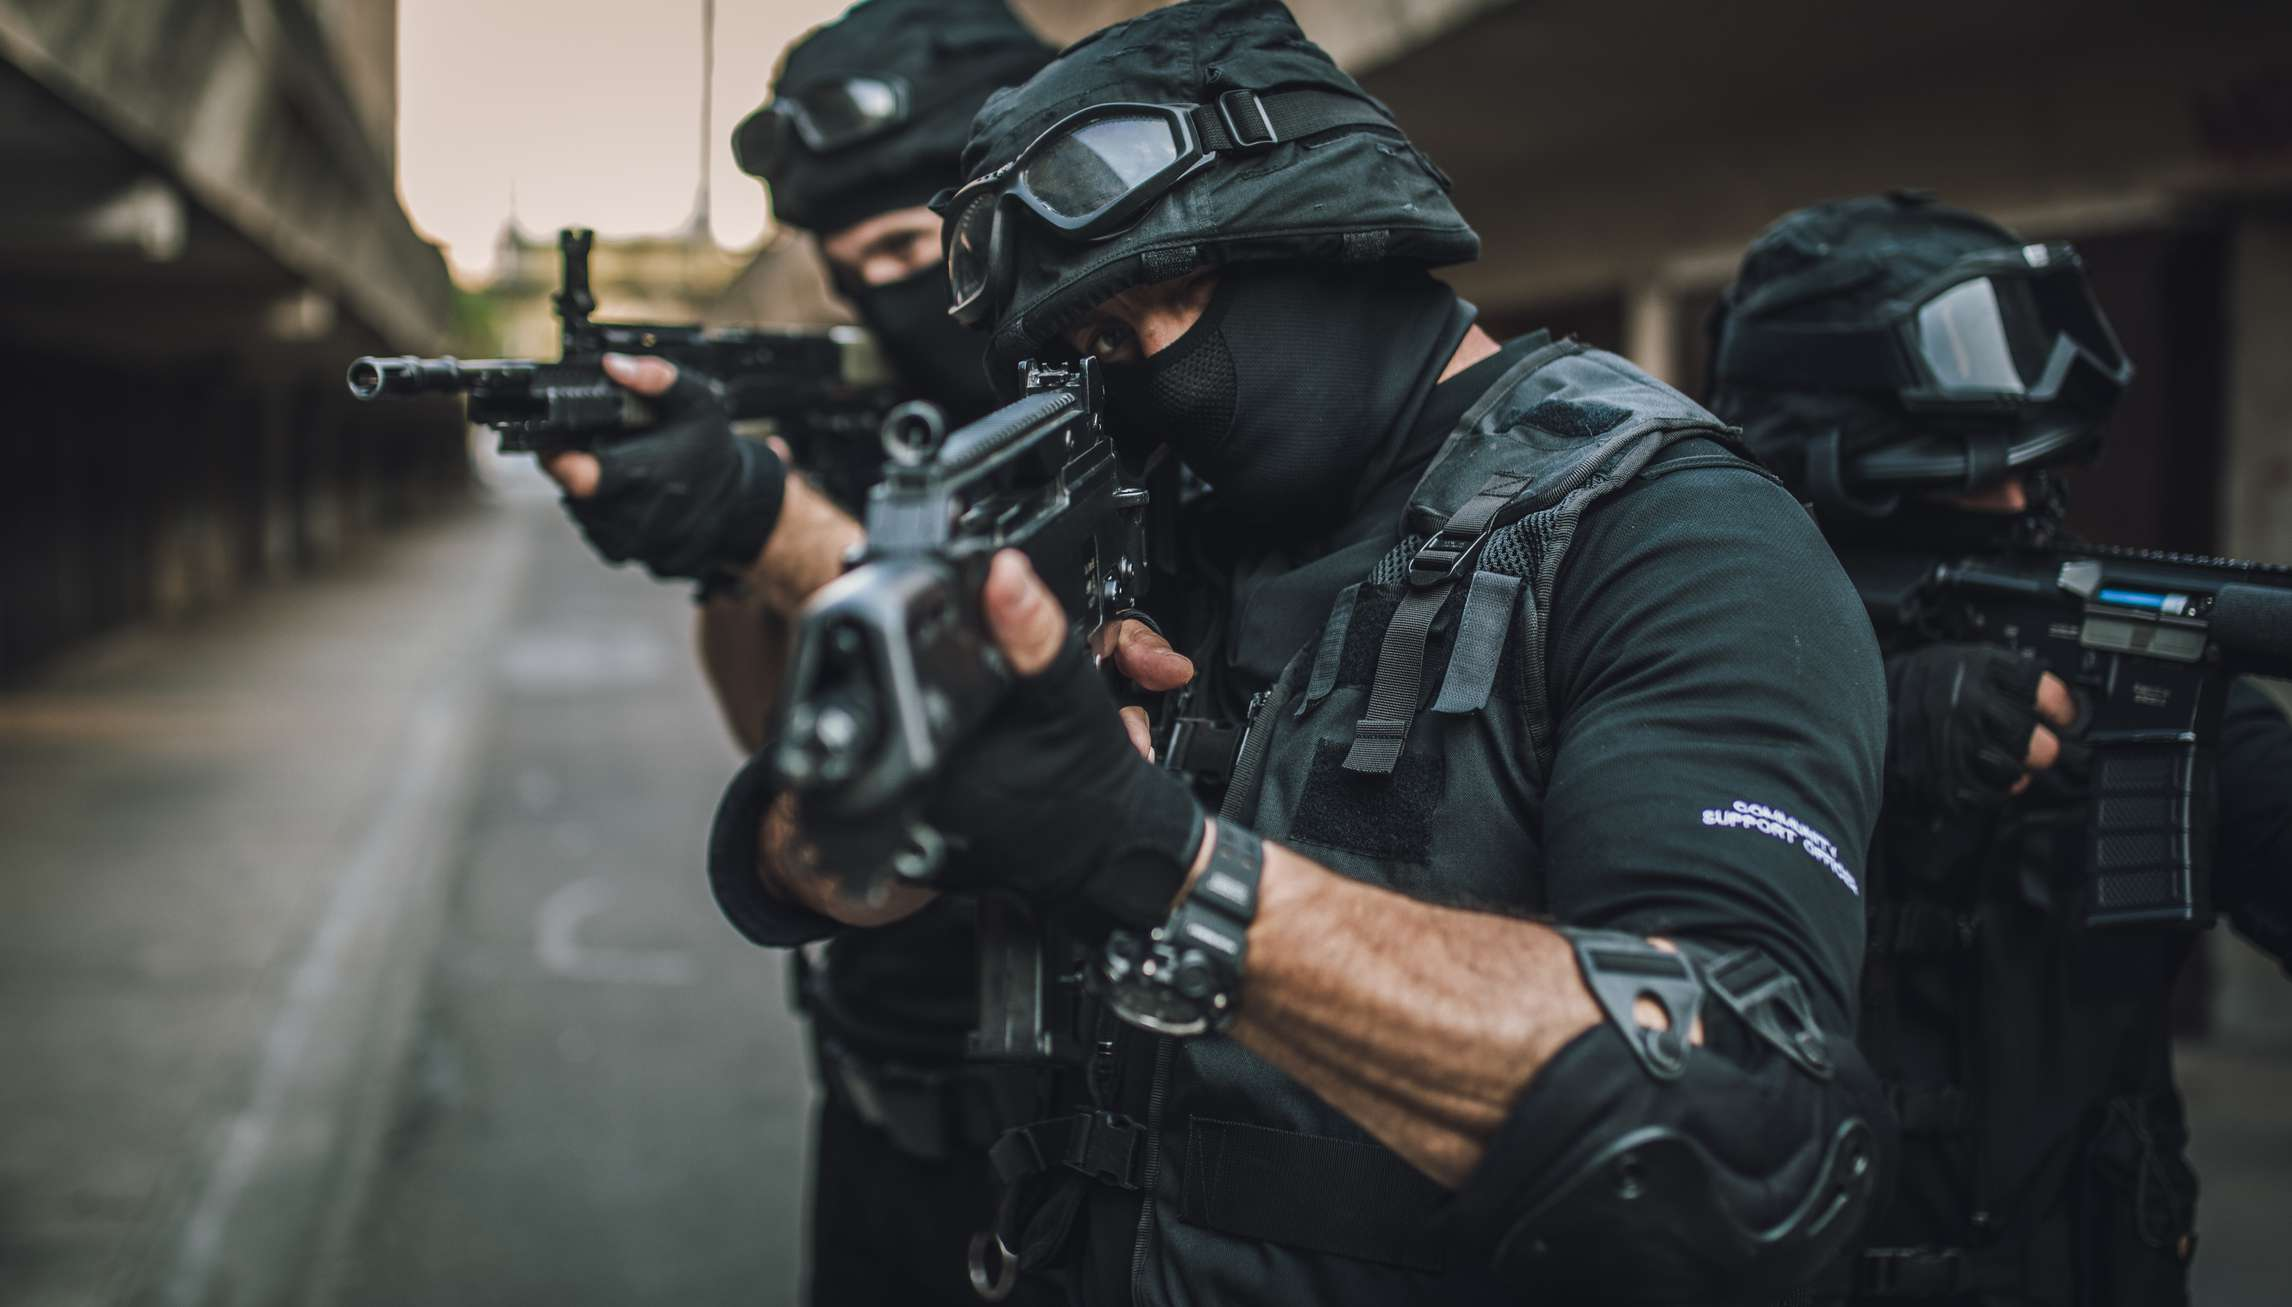 Police face criticism for use of military weapons and tactics.